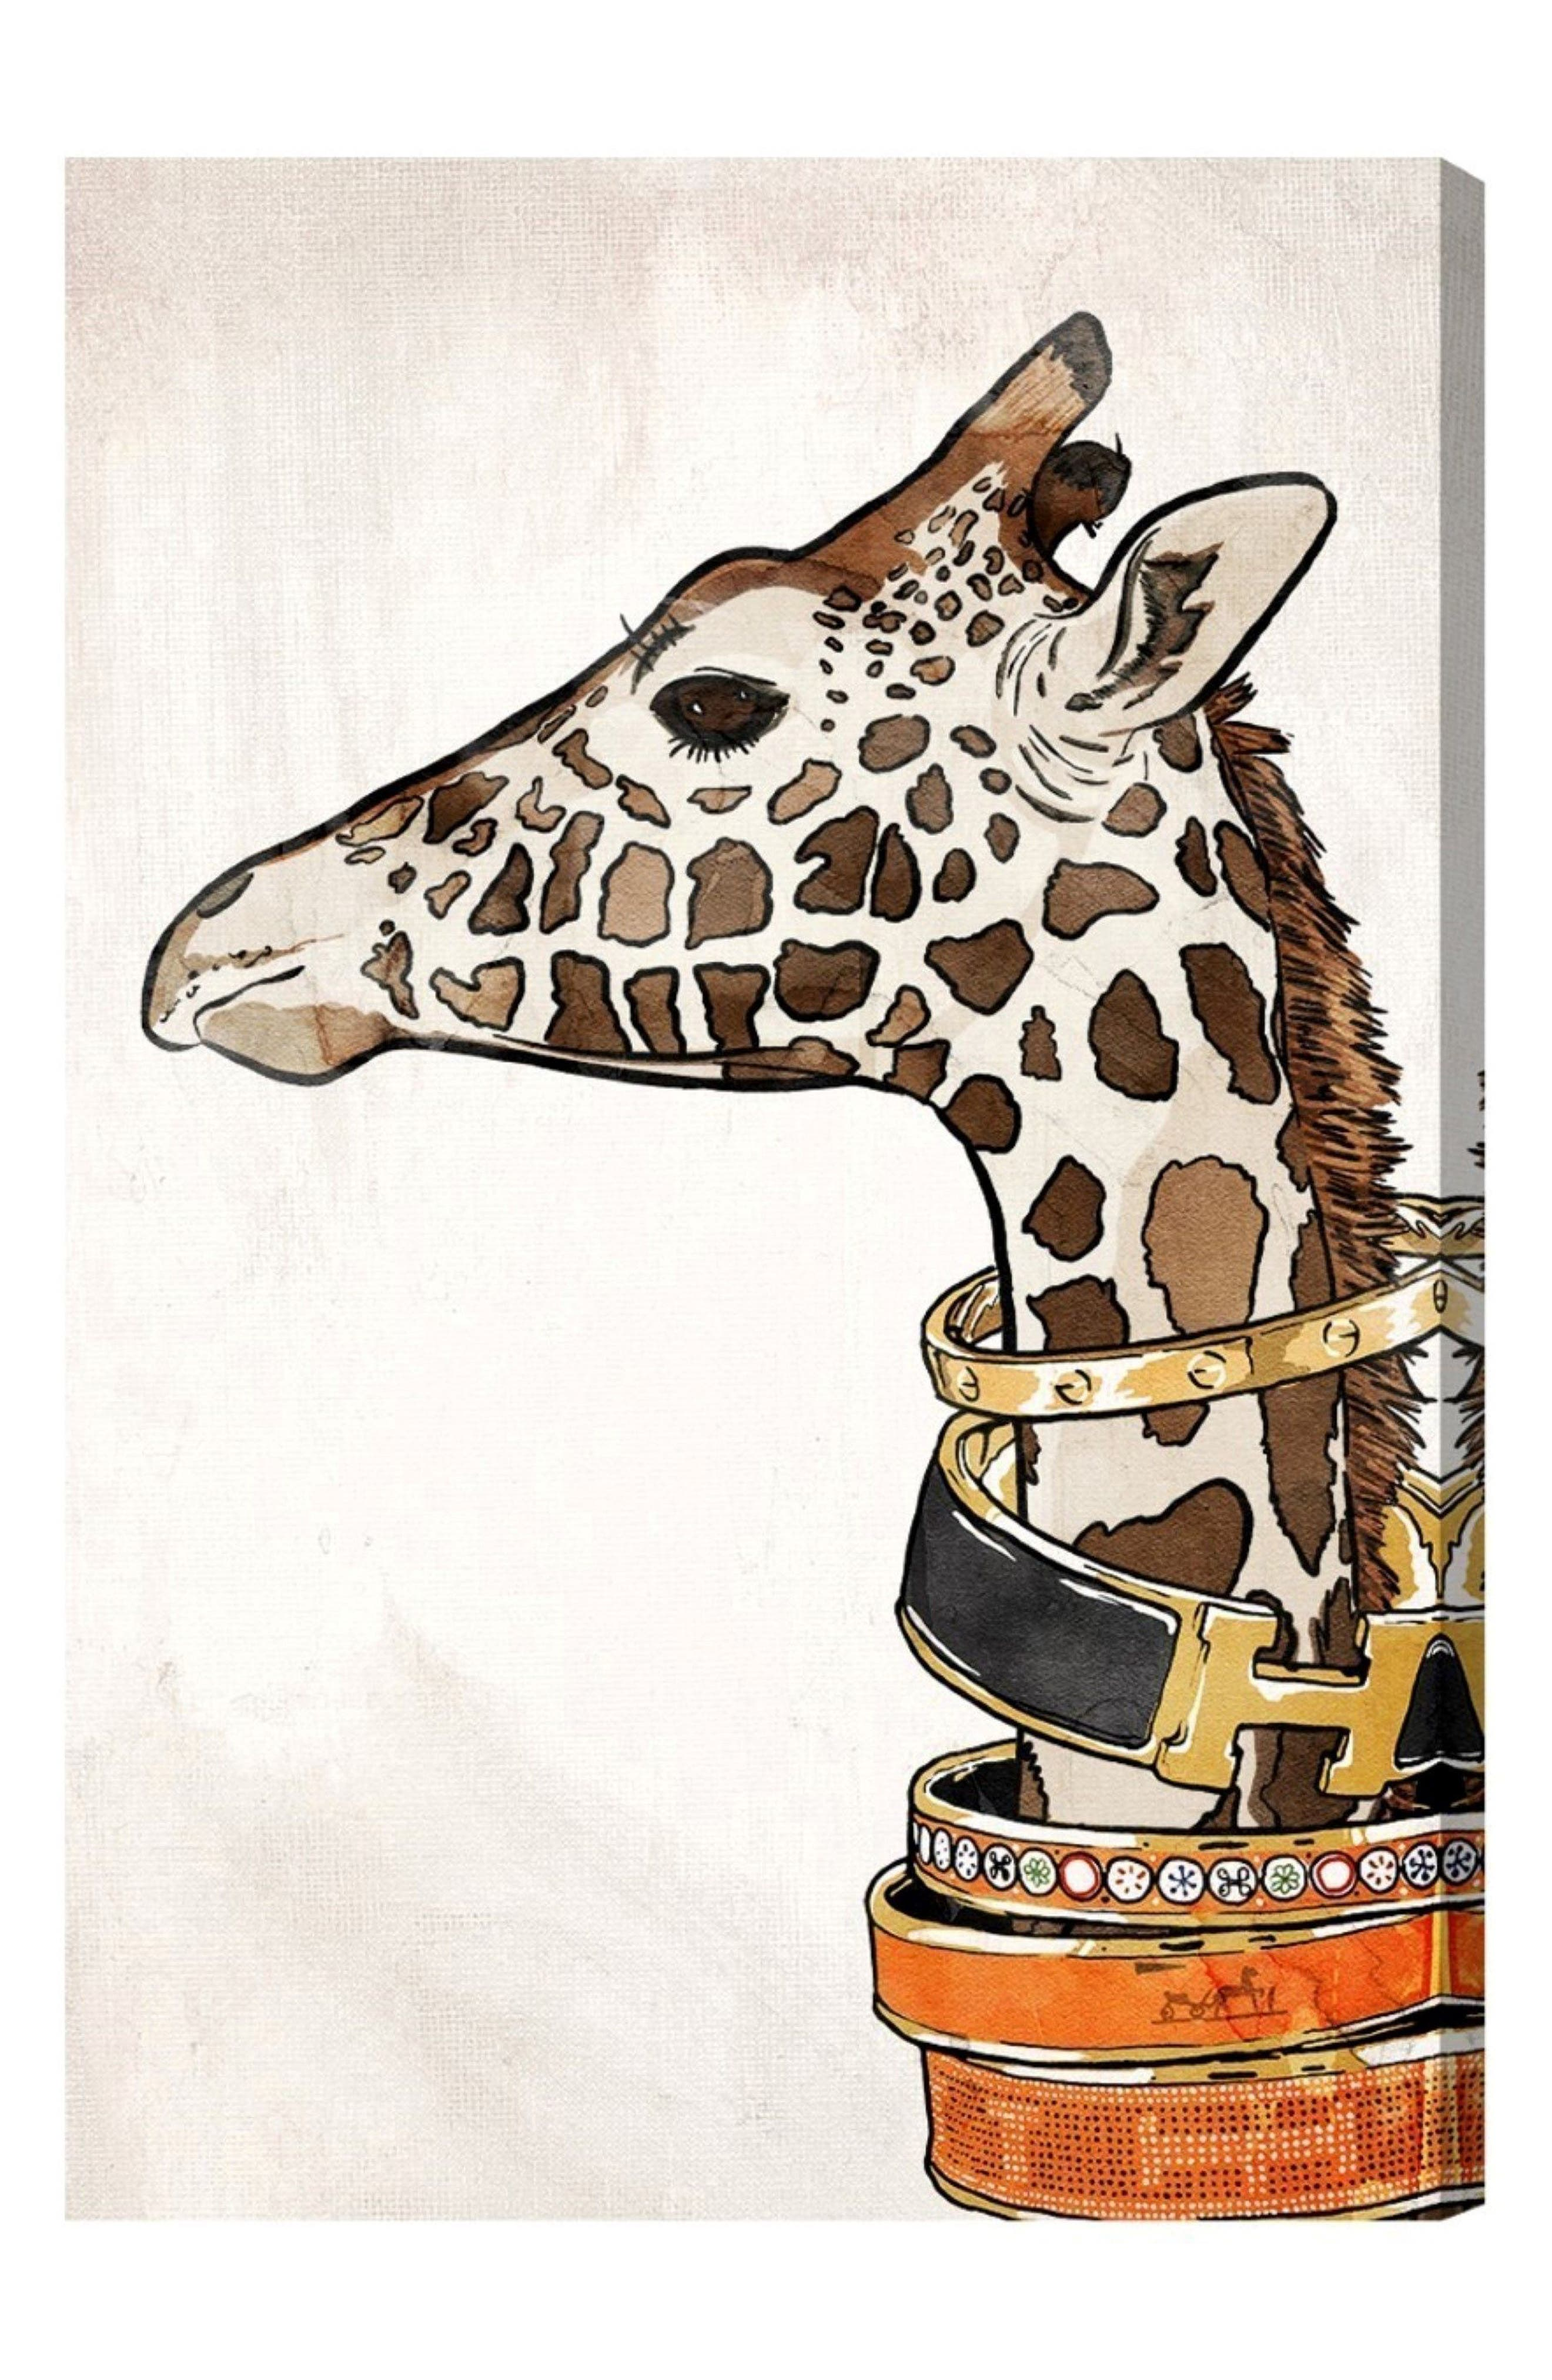 Alternate Image 1 Selected - Oliver Gal Luxurious Giraffe Canvas Wall Art